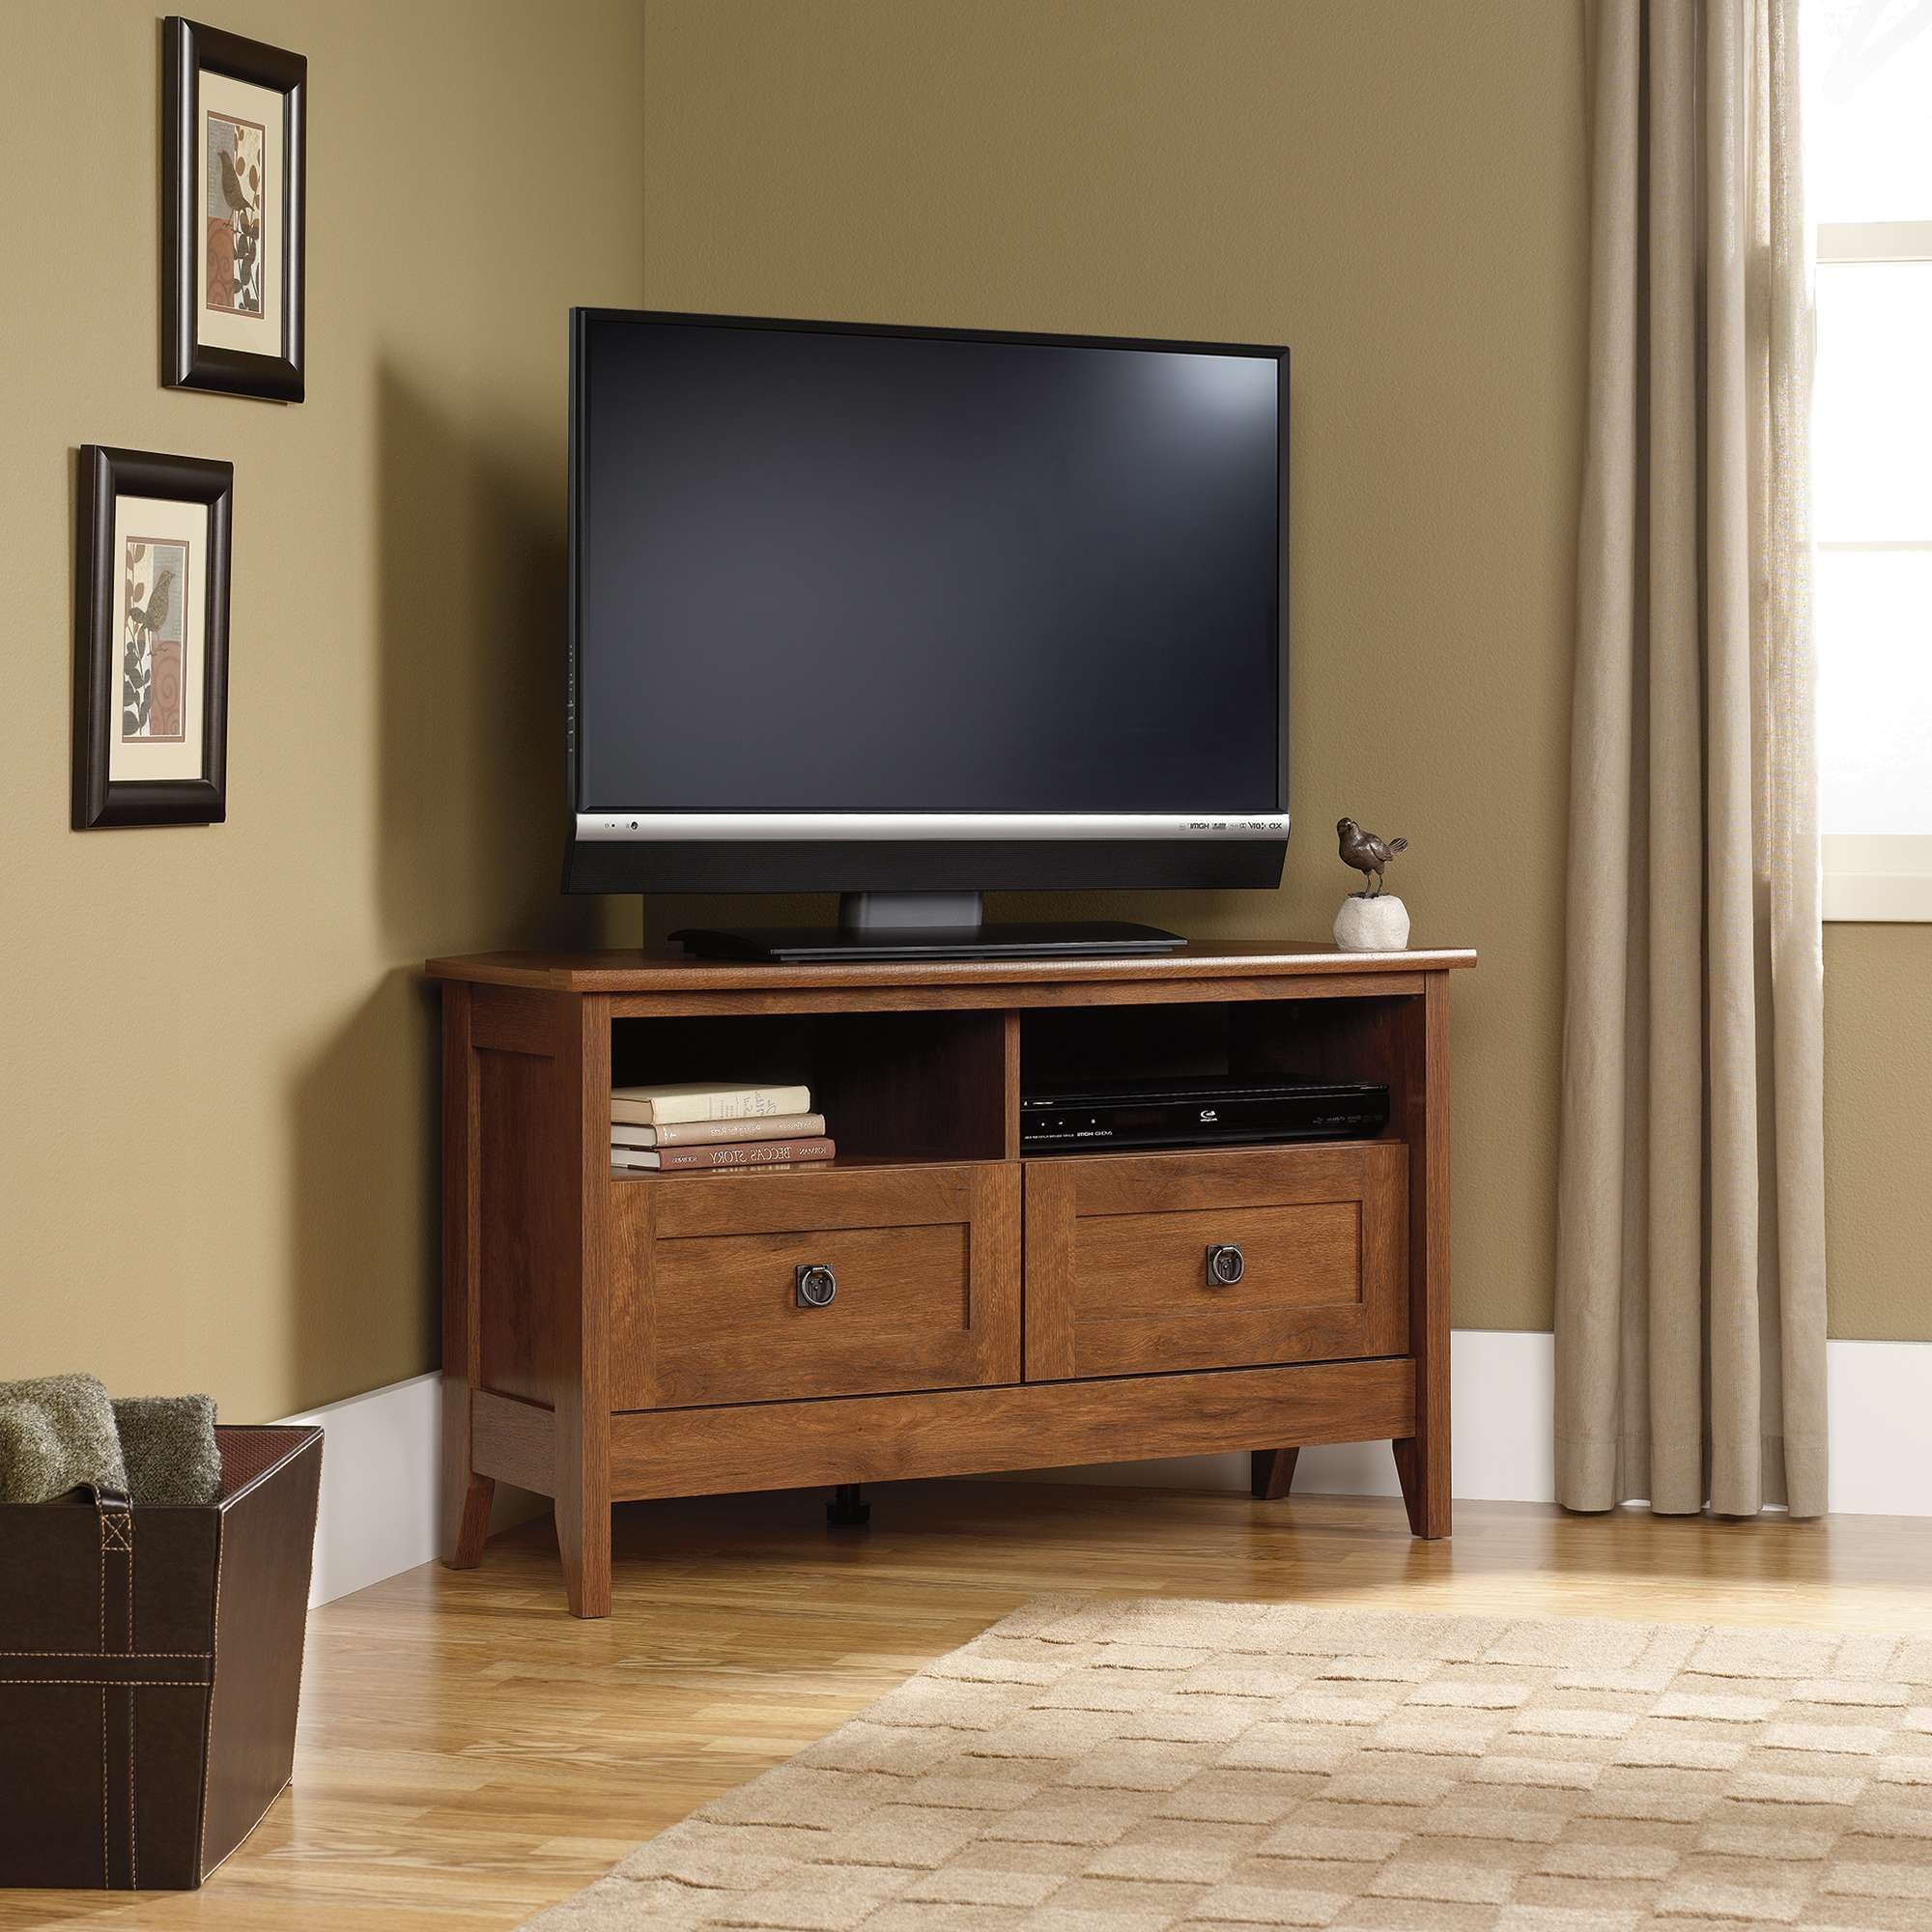 Sauder Select | Corner Tv Stand | 410627 | Sauder With Regard To Tv Cabinets (View 12 of 20)